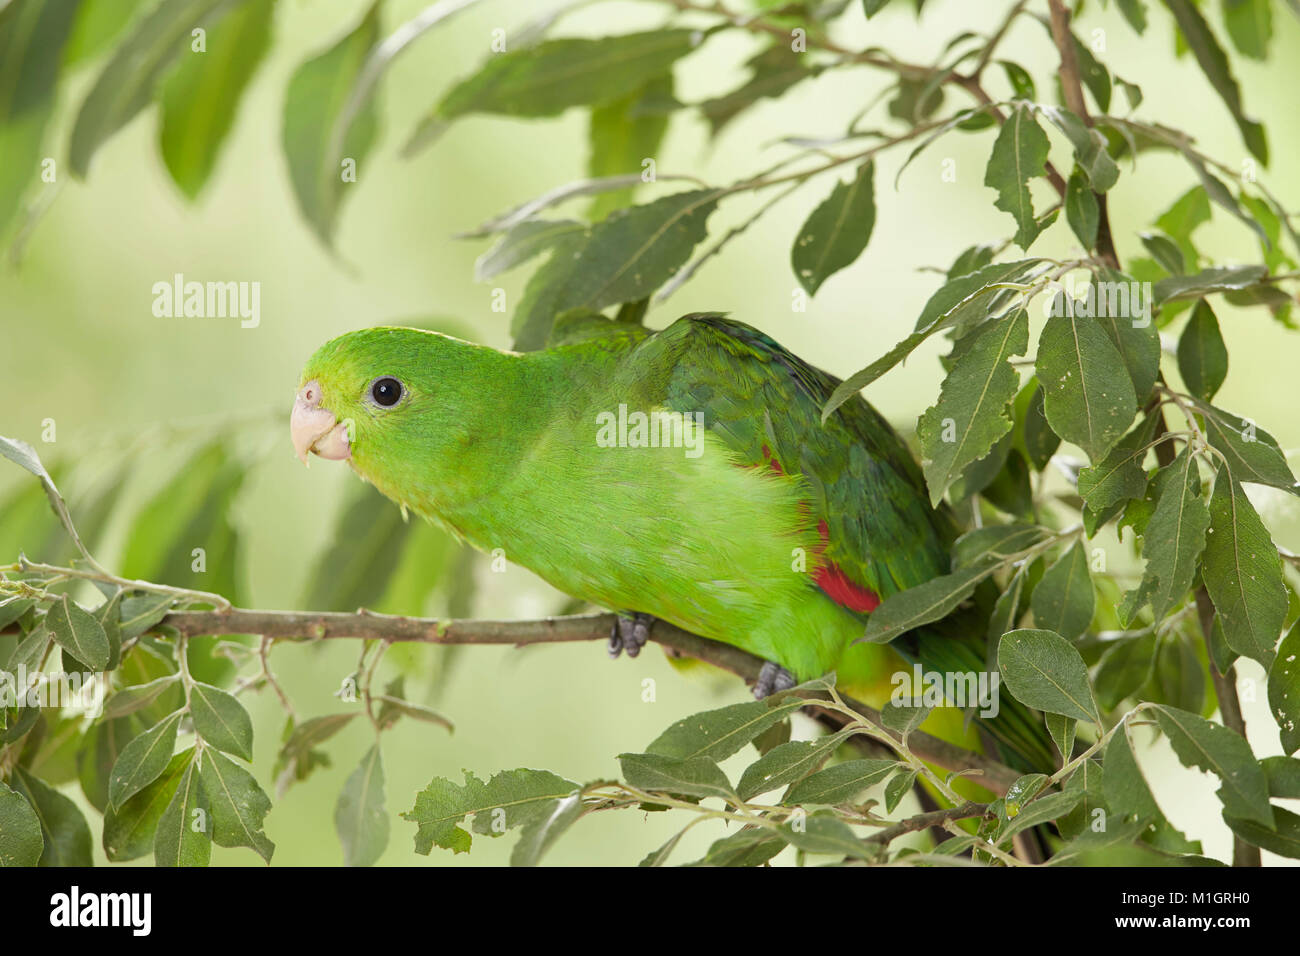 Red-winged Parrot (Aprosmictus erythropterus). Juvenile perched on a willow twig. Germany - Stock Image